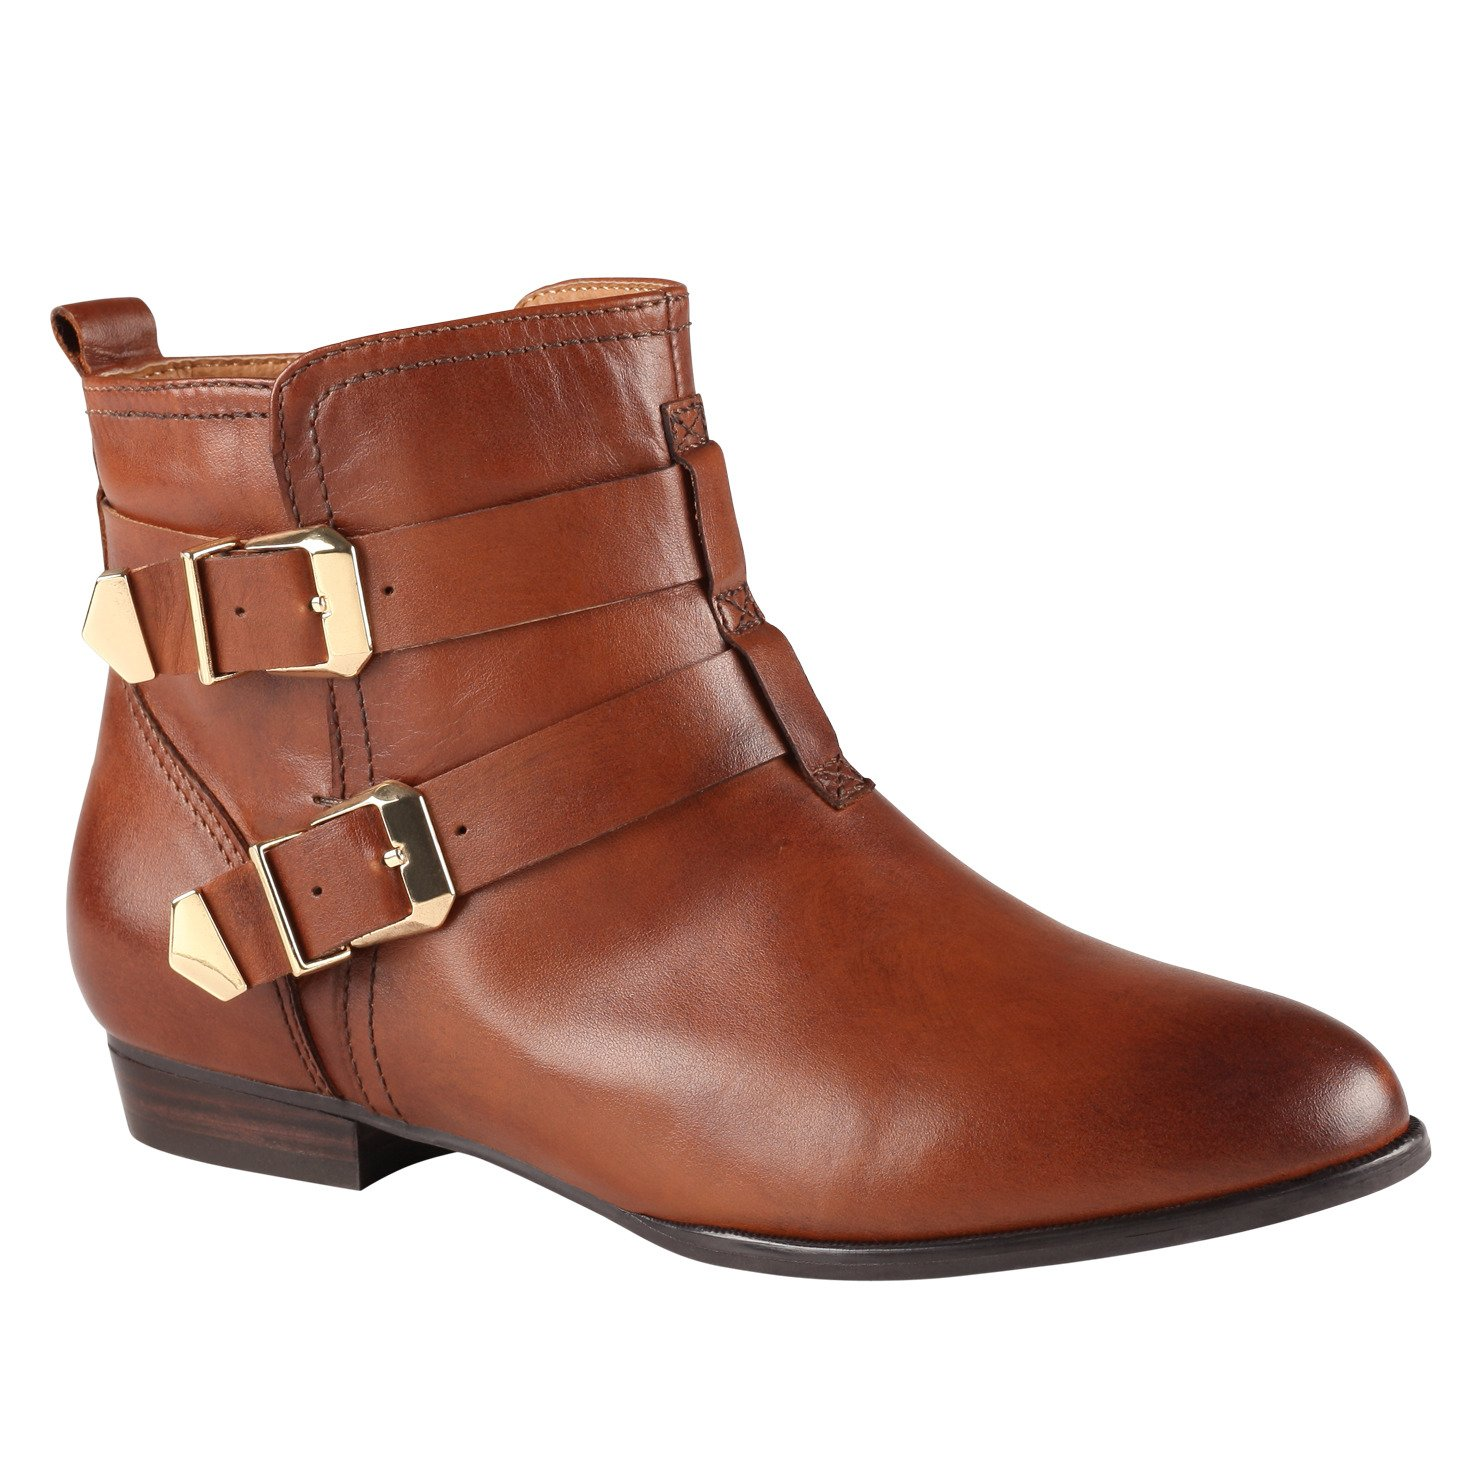 arzt s ankle boots boots for sale from aldo things i